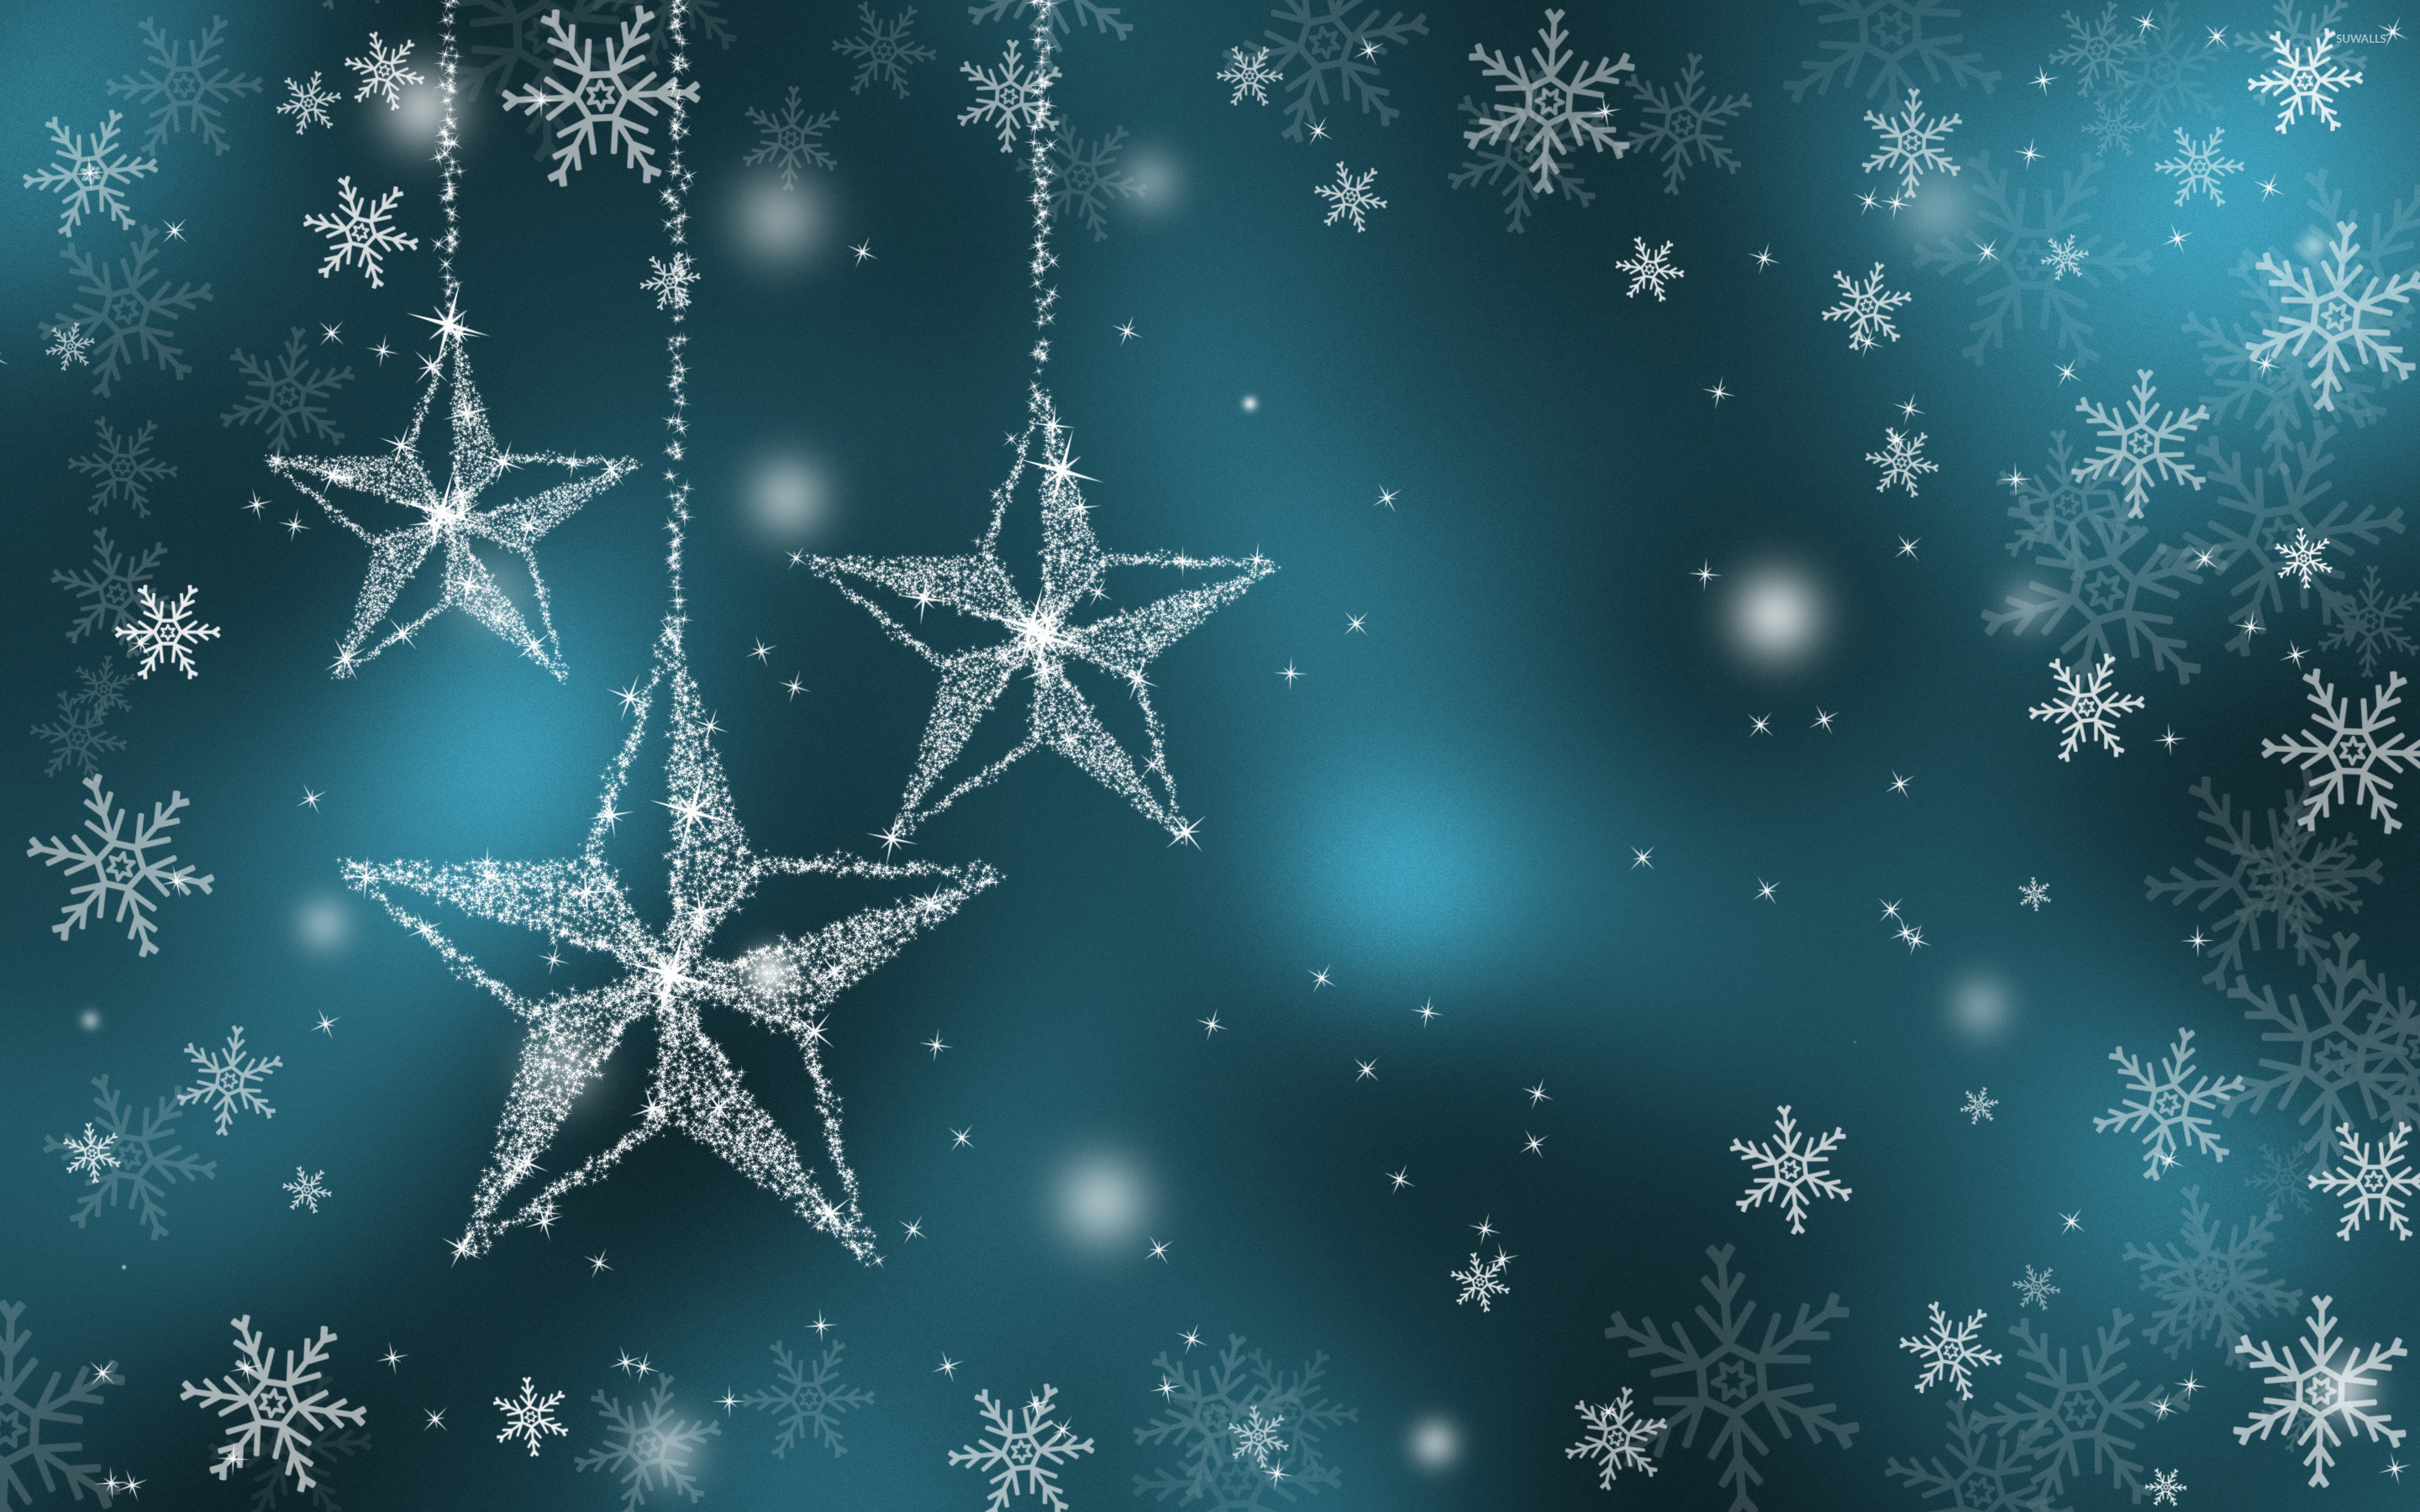 sparkling stars wallpaper - holiday wallpapers - #25820